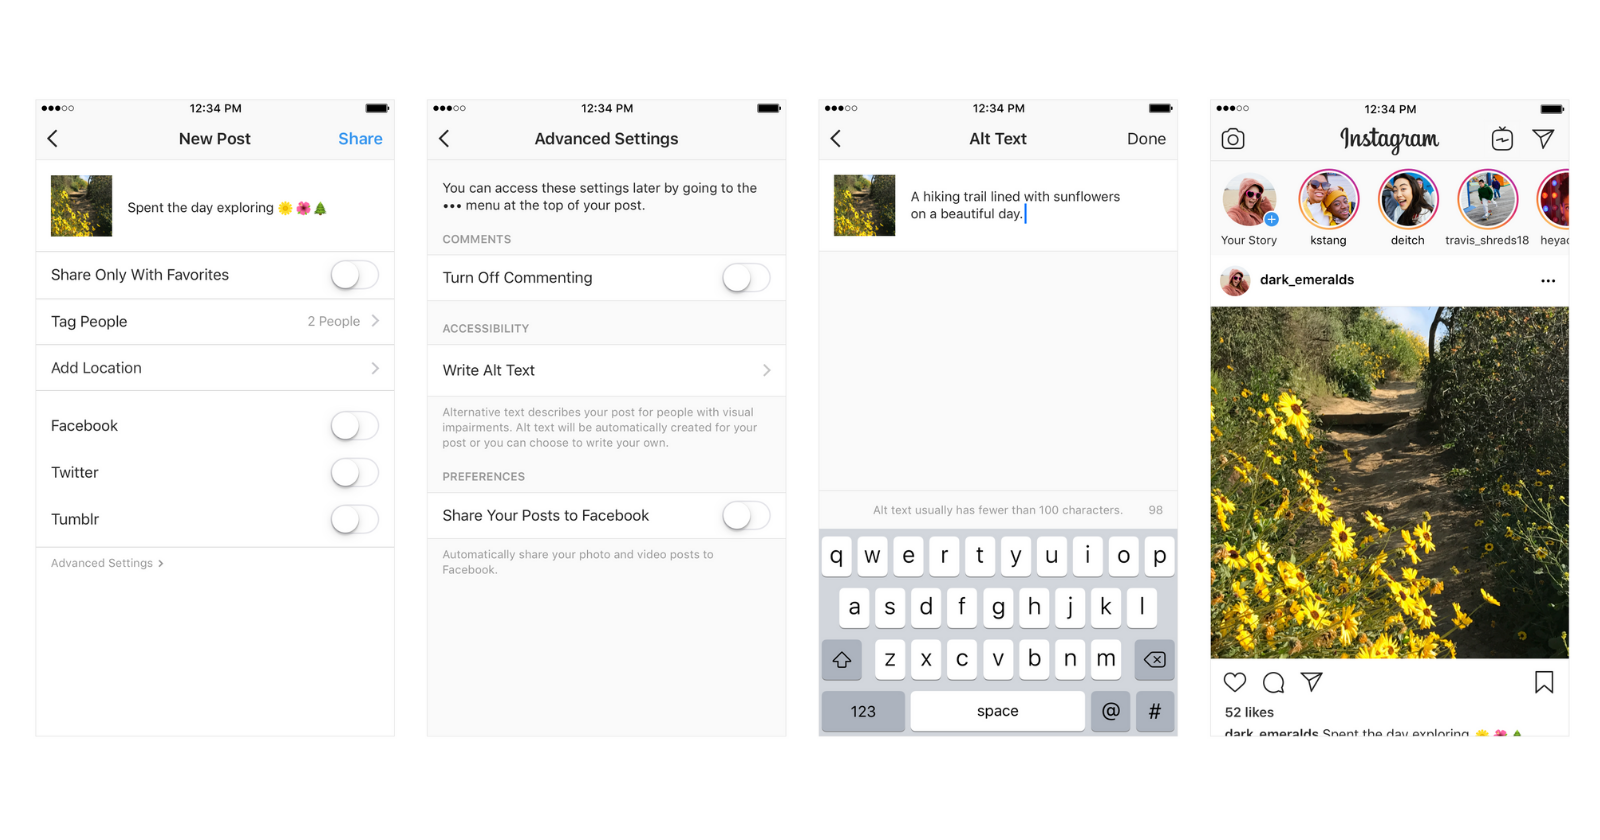 Instagram Lets Users Add Alt Text to Photos - Search Engine